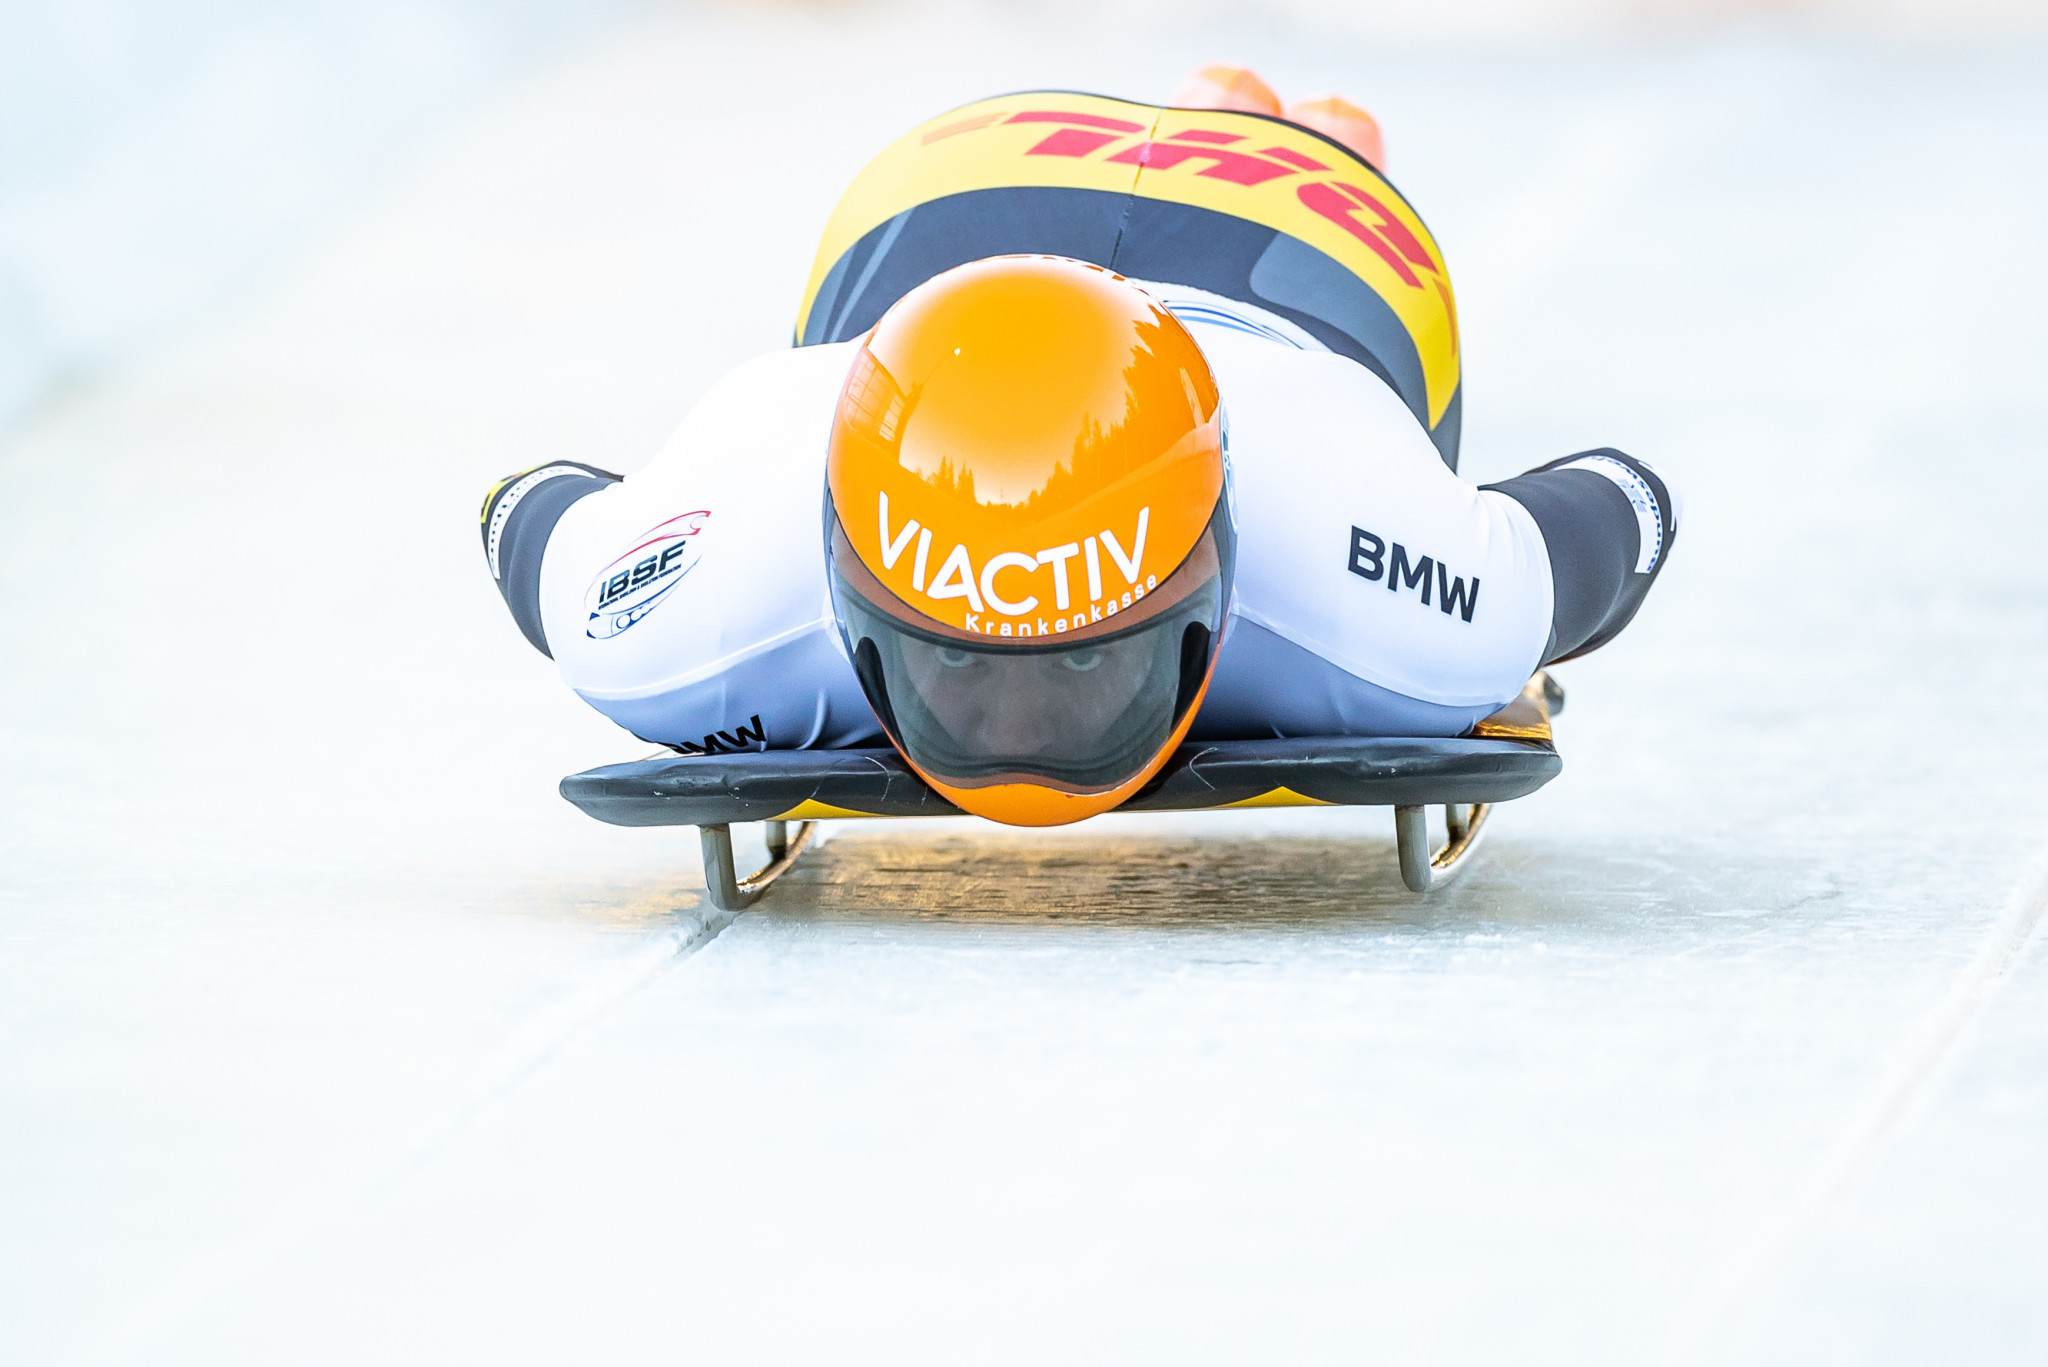 Gassner earns maiden men's skeleton win on IBSF World Cup circuit